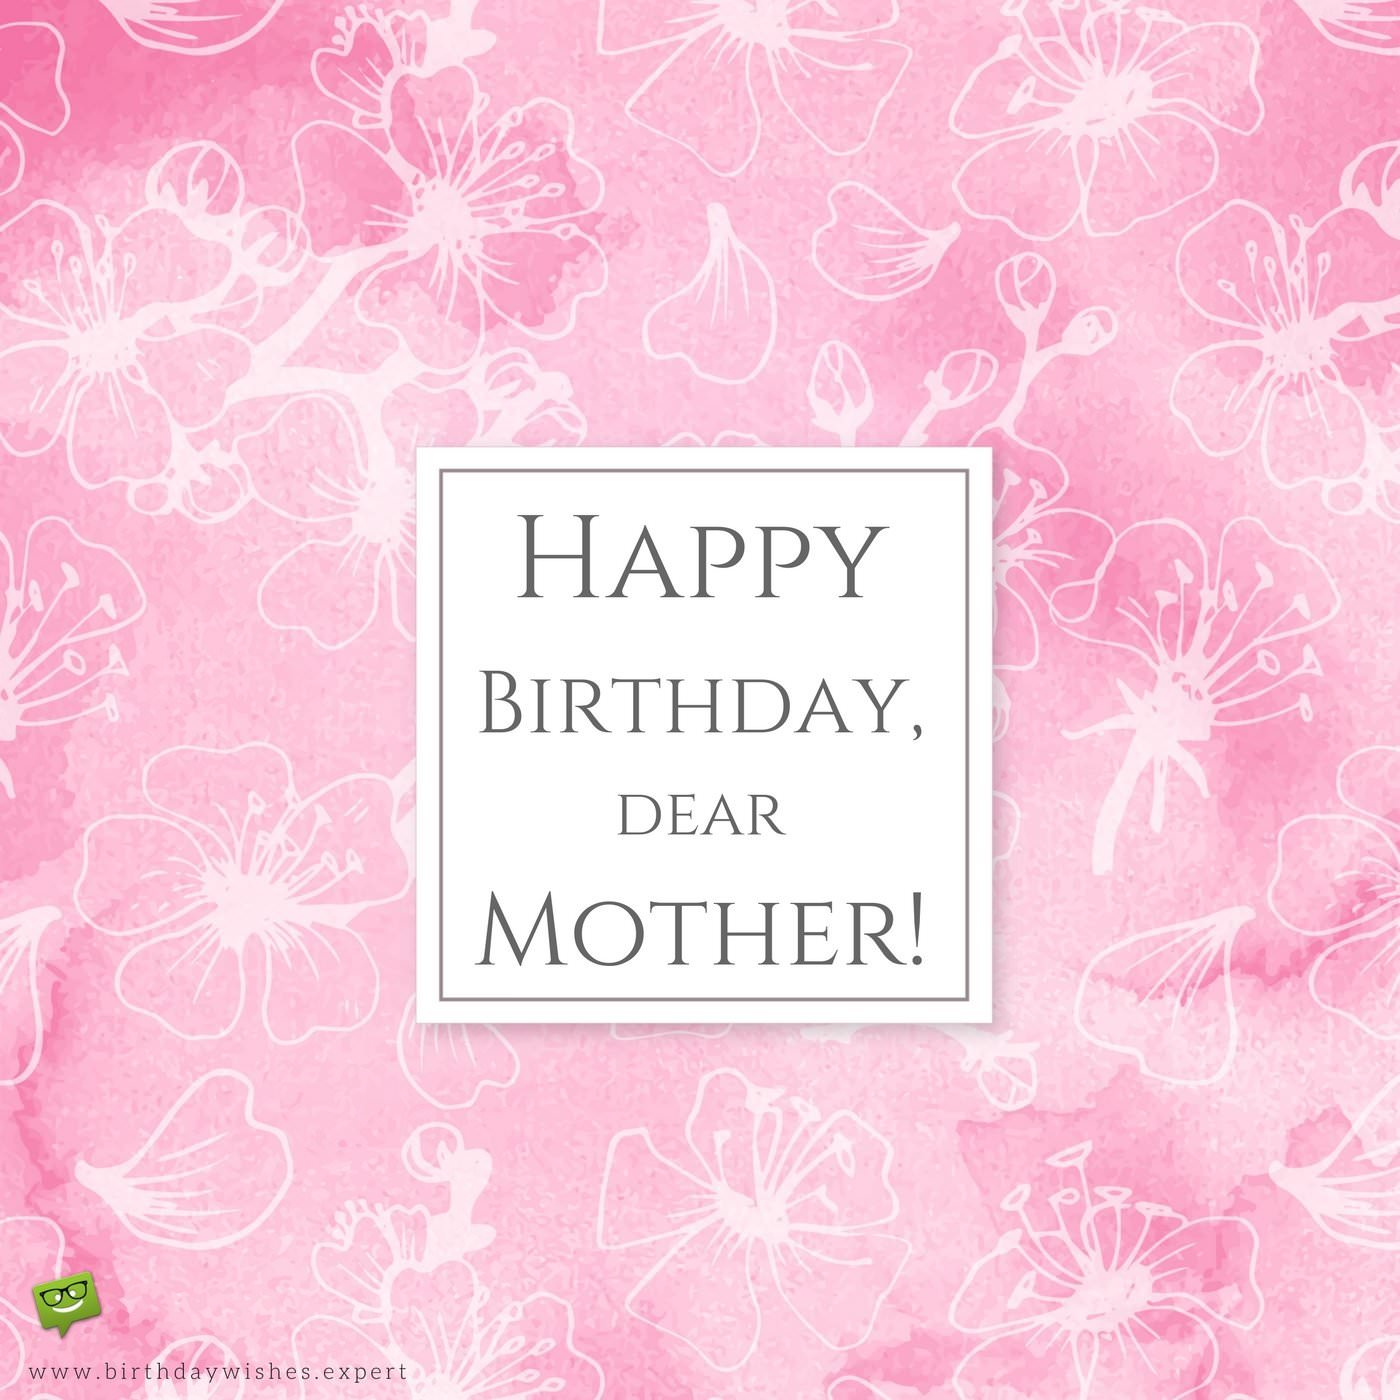 birthday message to my mom ; Elegant-birthday-wish-for-my-mother-on-pink-background